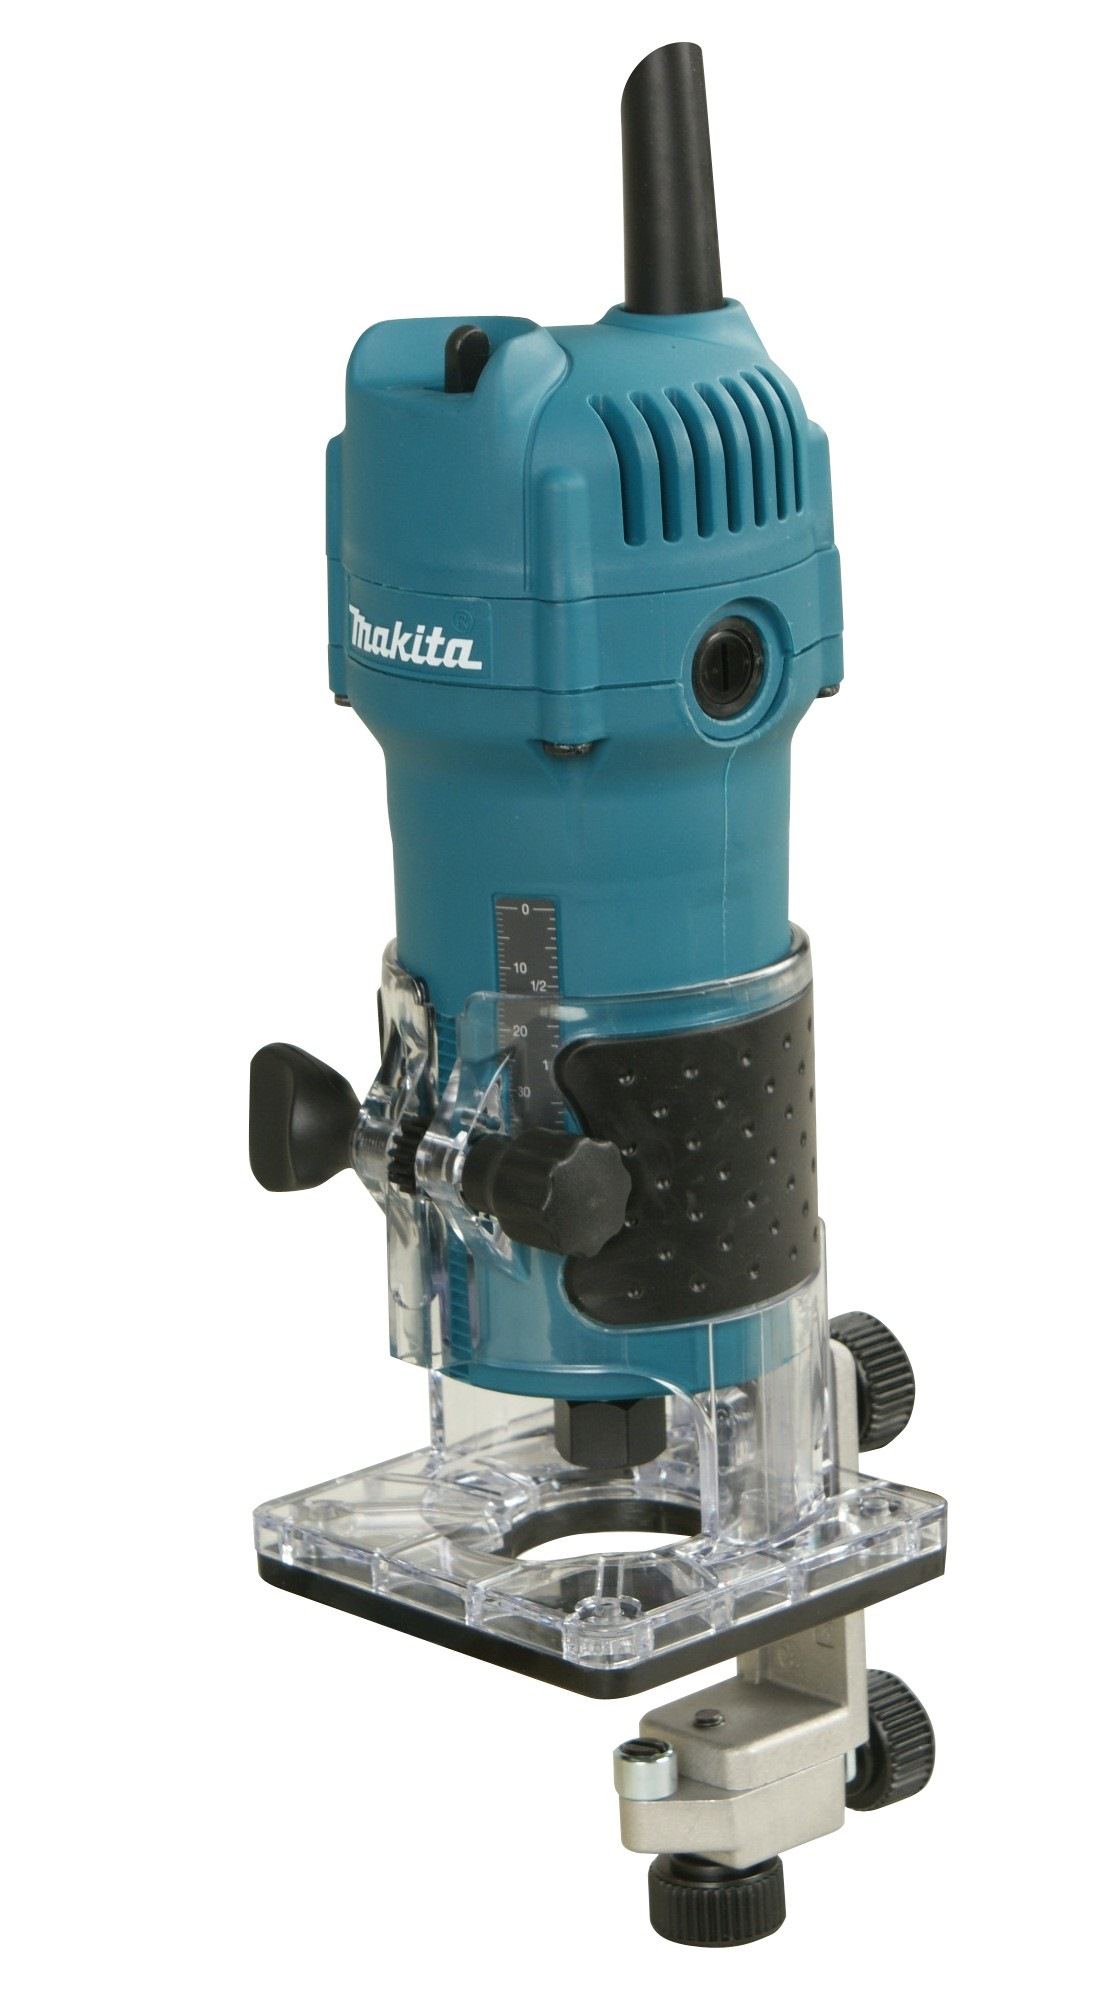 MAKITA HAND TRIMMER, 530W, 3709